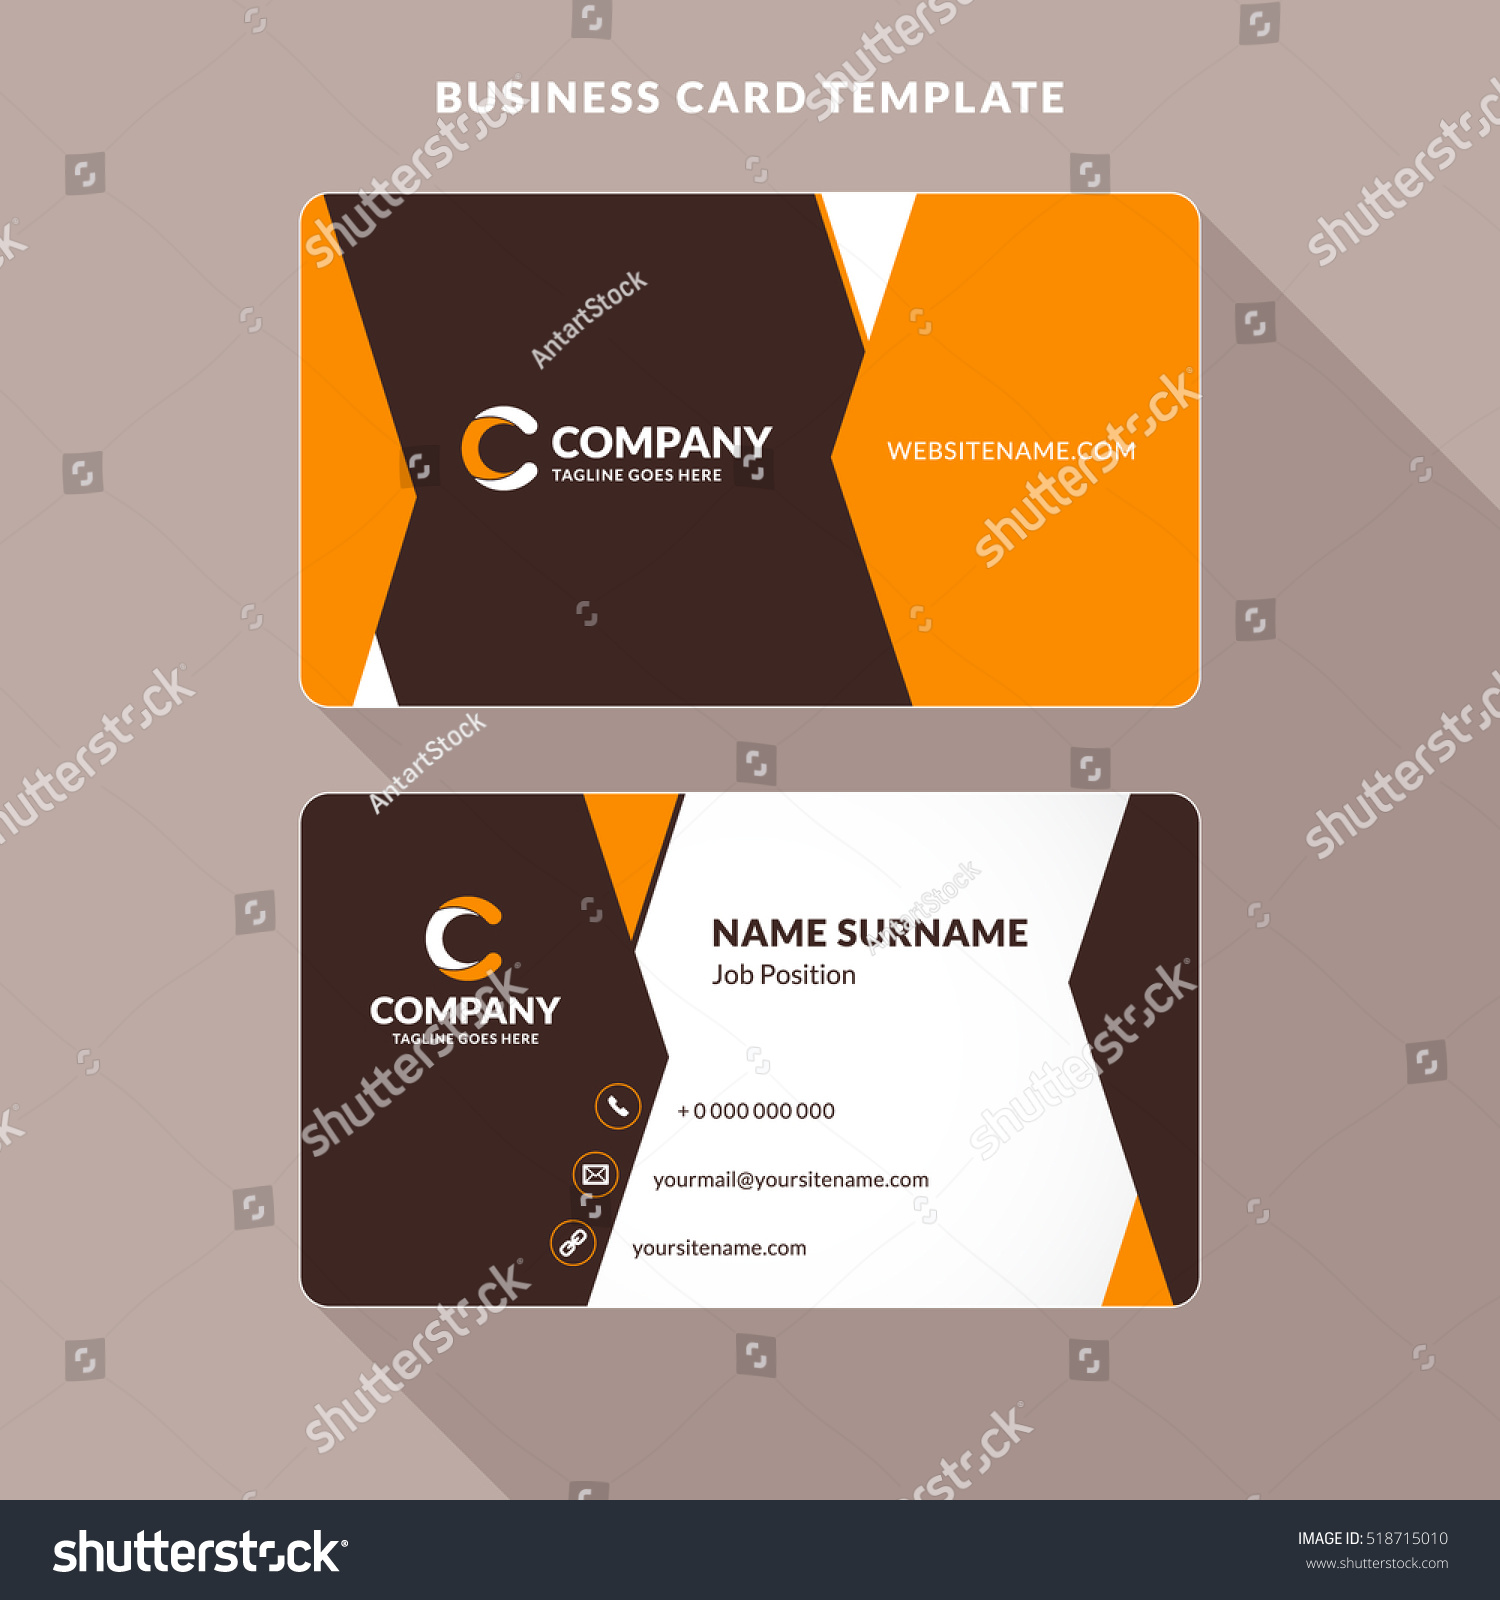 Two sided business card template word mandegarfo two sided business card template word cheaphphosting Image collections